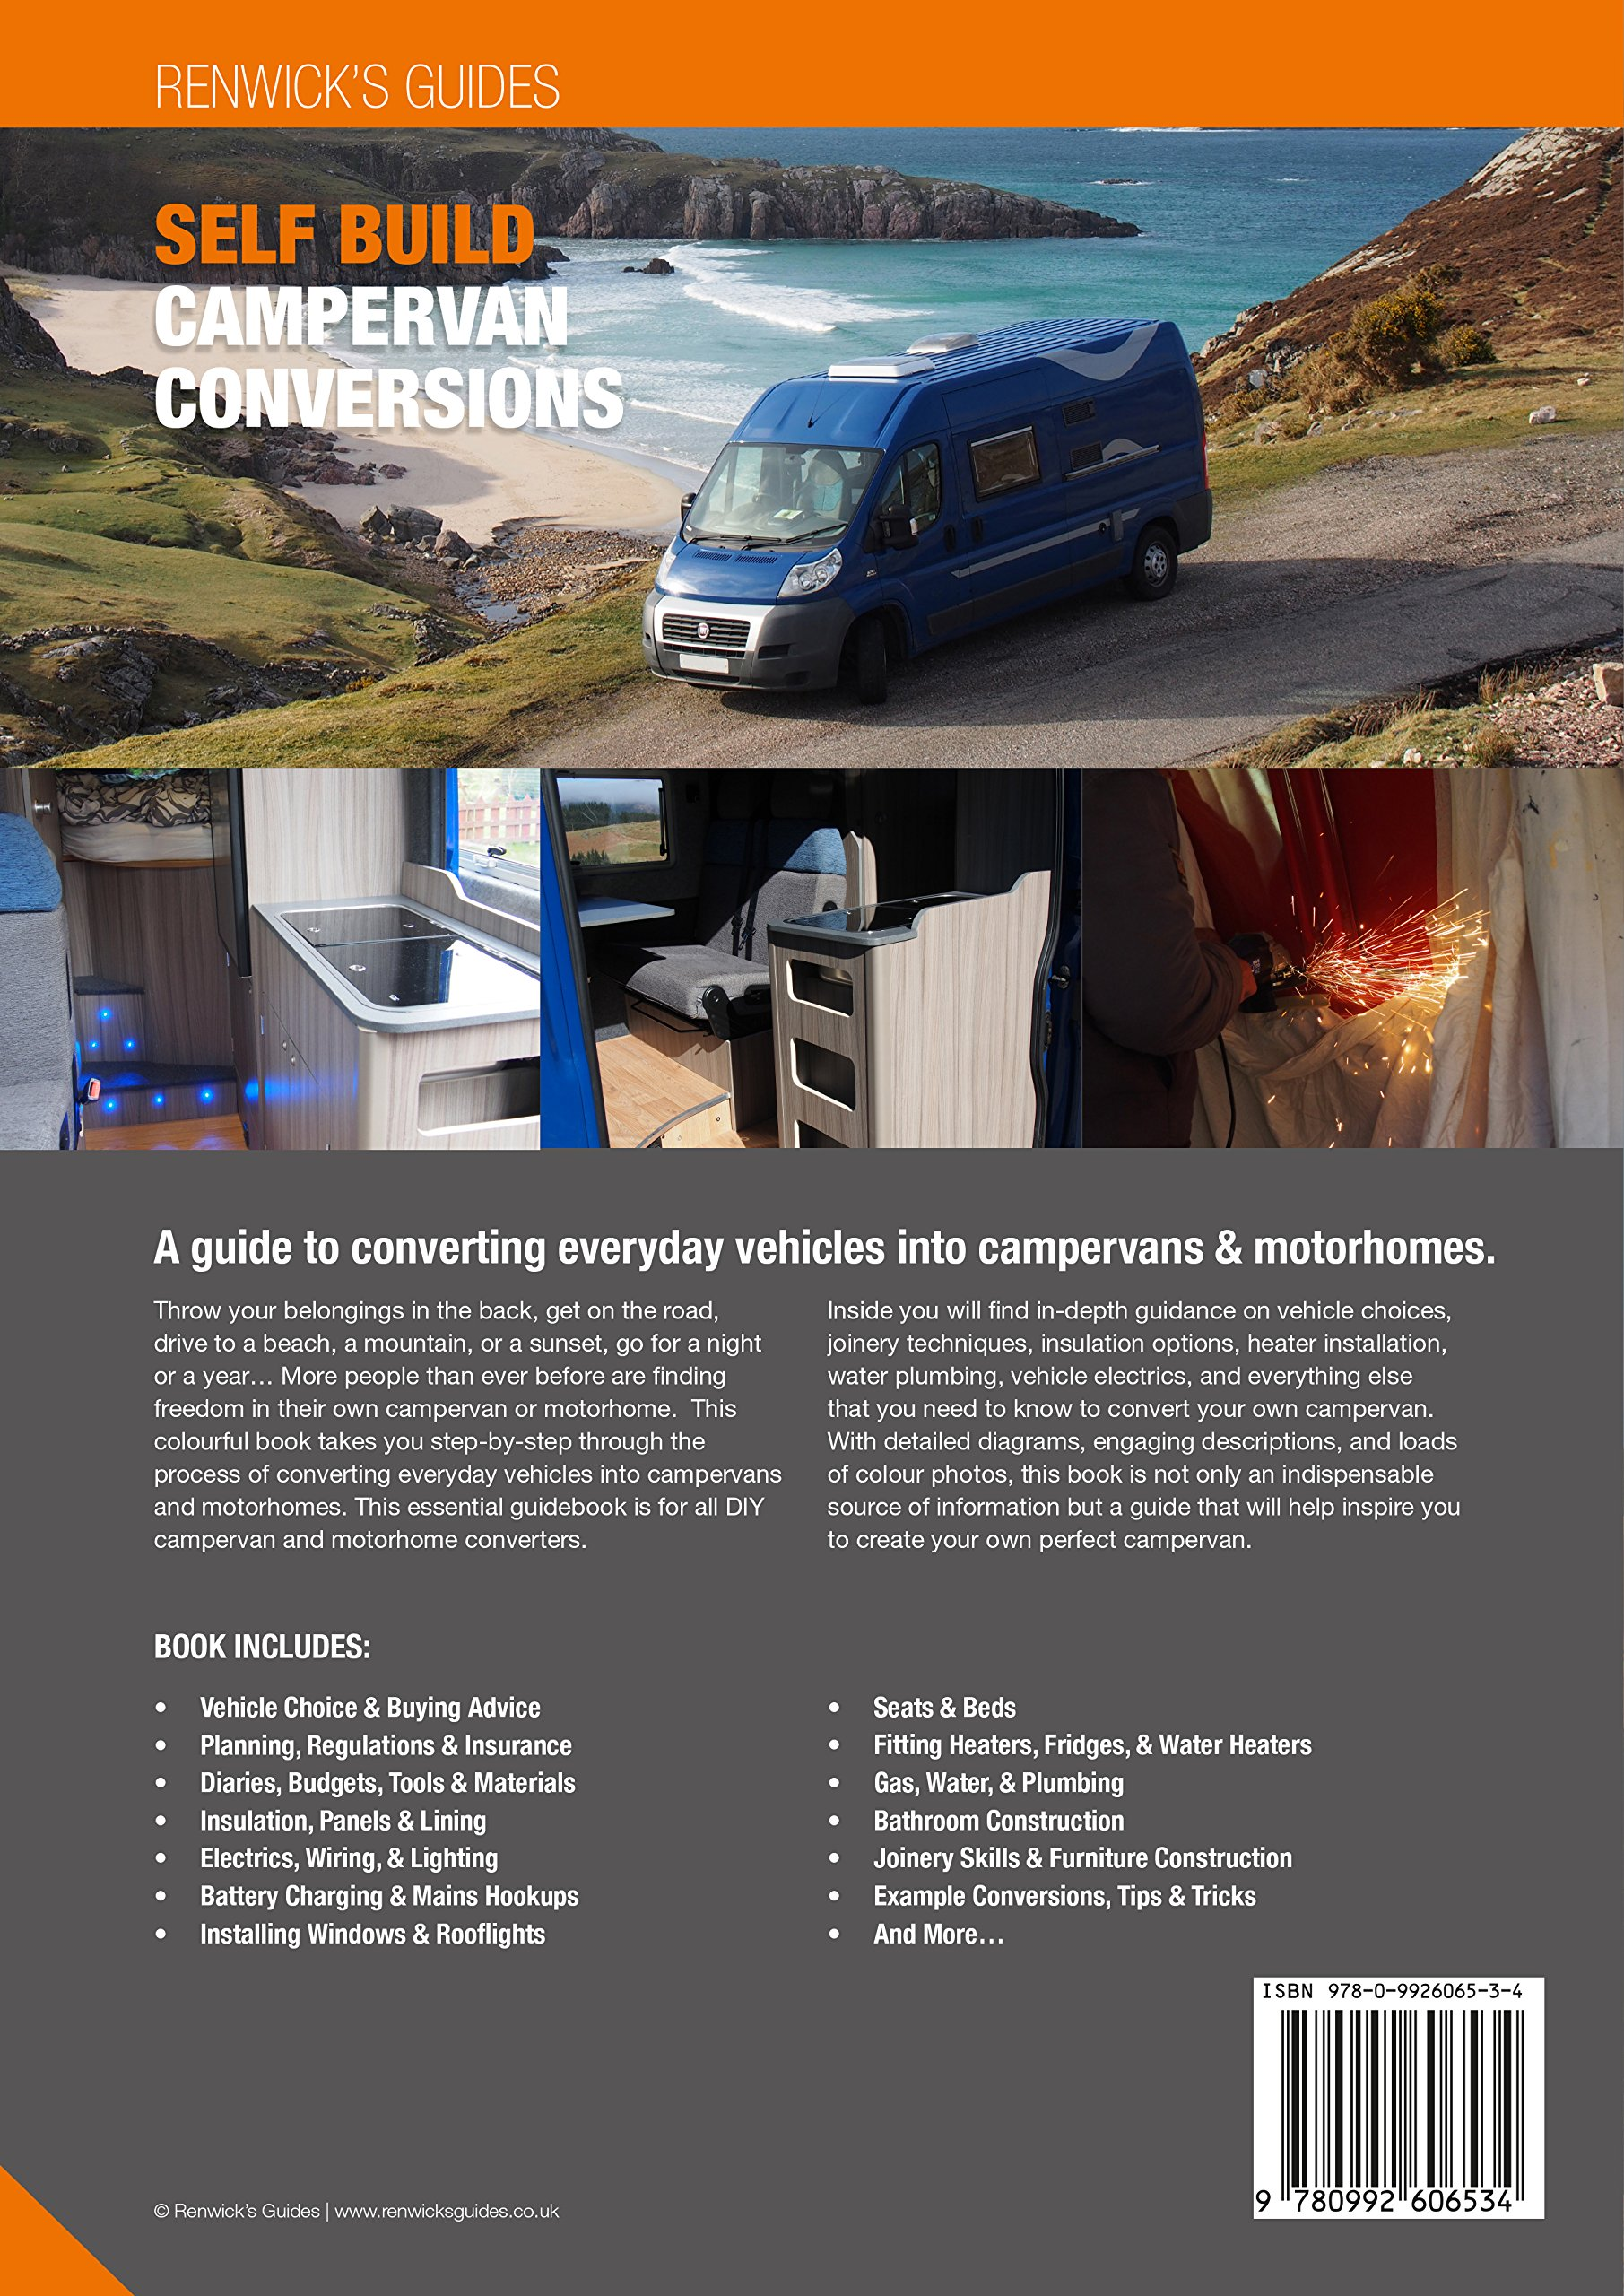 Self Build Campervan Conversions A Guide To Converting Everyday Wiring Diagram For Recreational Vehicles Into Campervans Motorhomes Kenny Biggin 9780992606534 Books